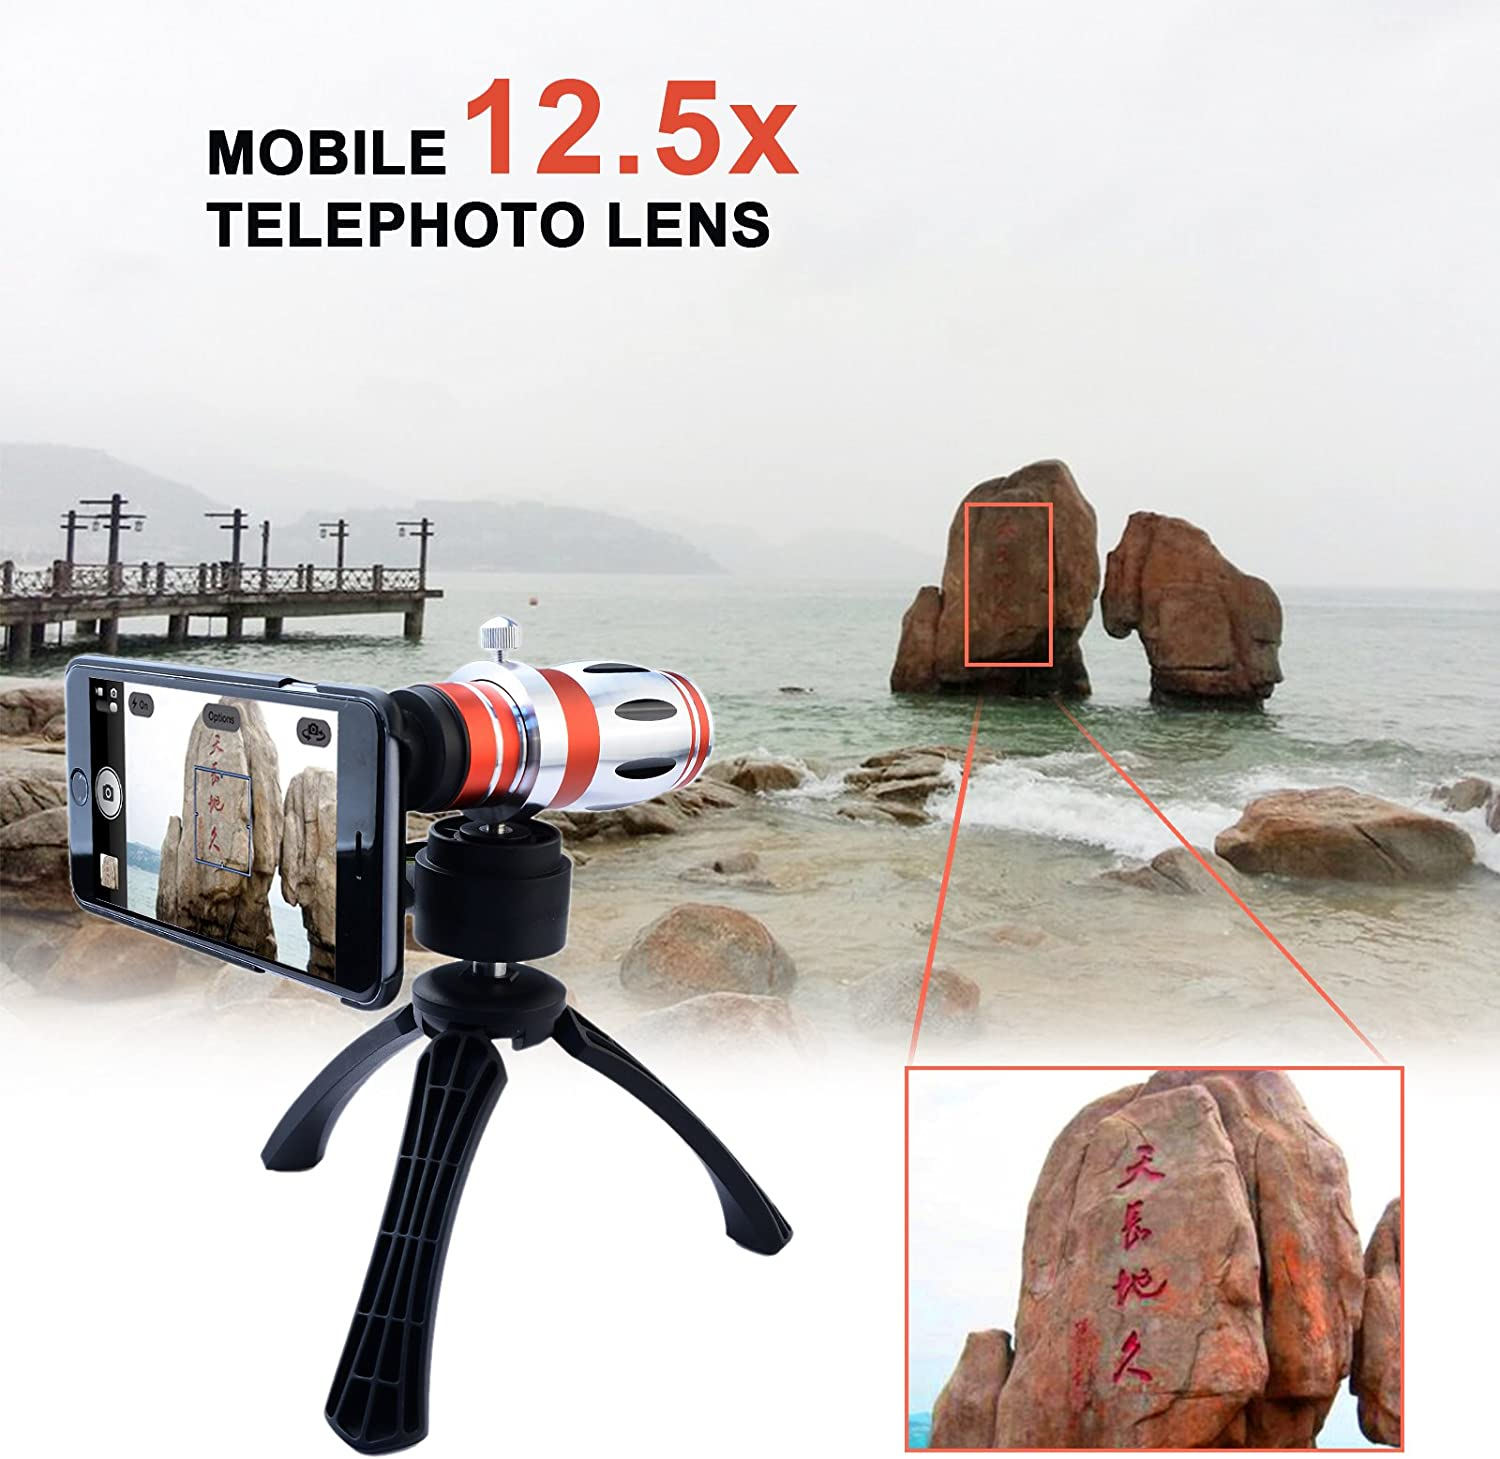 Apexel Telescope 12.5x Zoom Telephoto Manual Focus Long Focal Camera Phone Lens with High-end Tripod for Samsung Galaxy S6 Edge